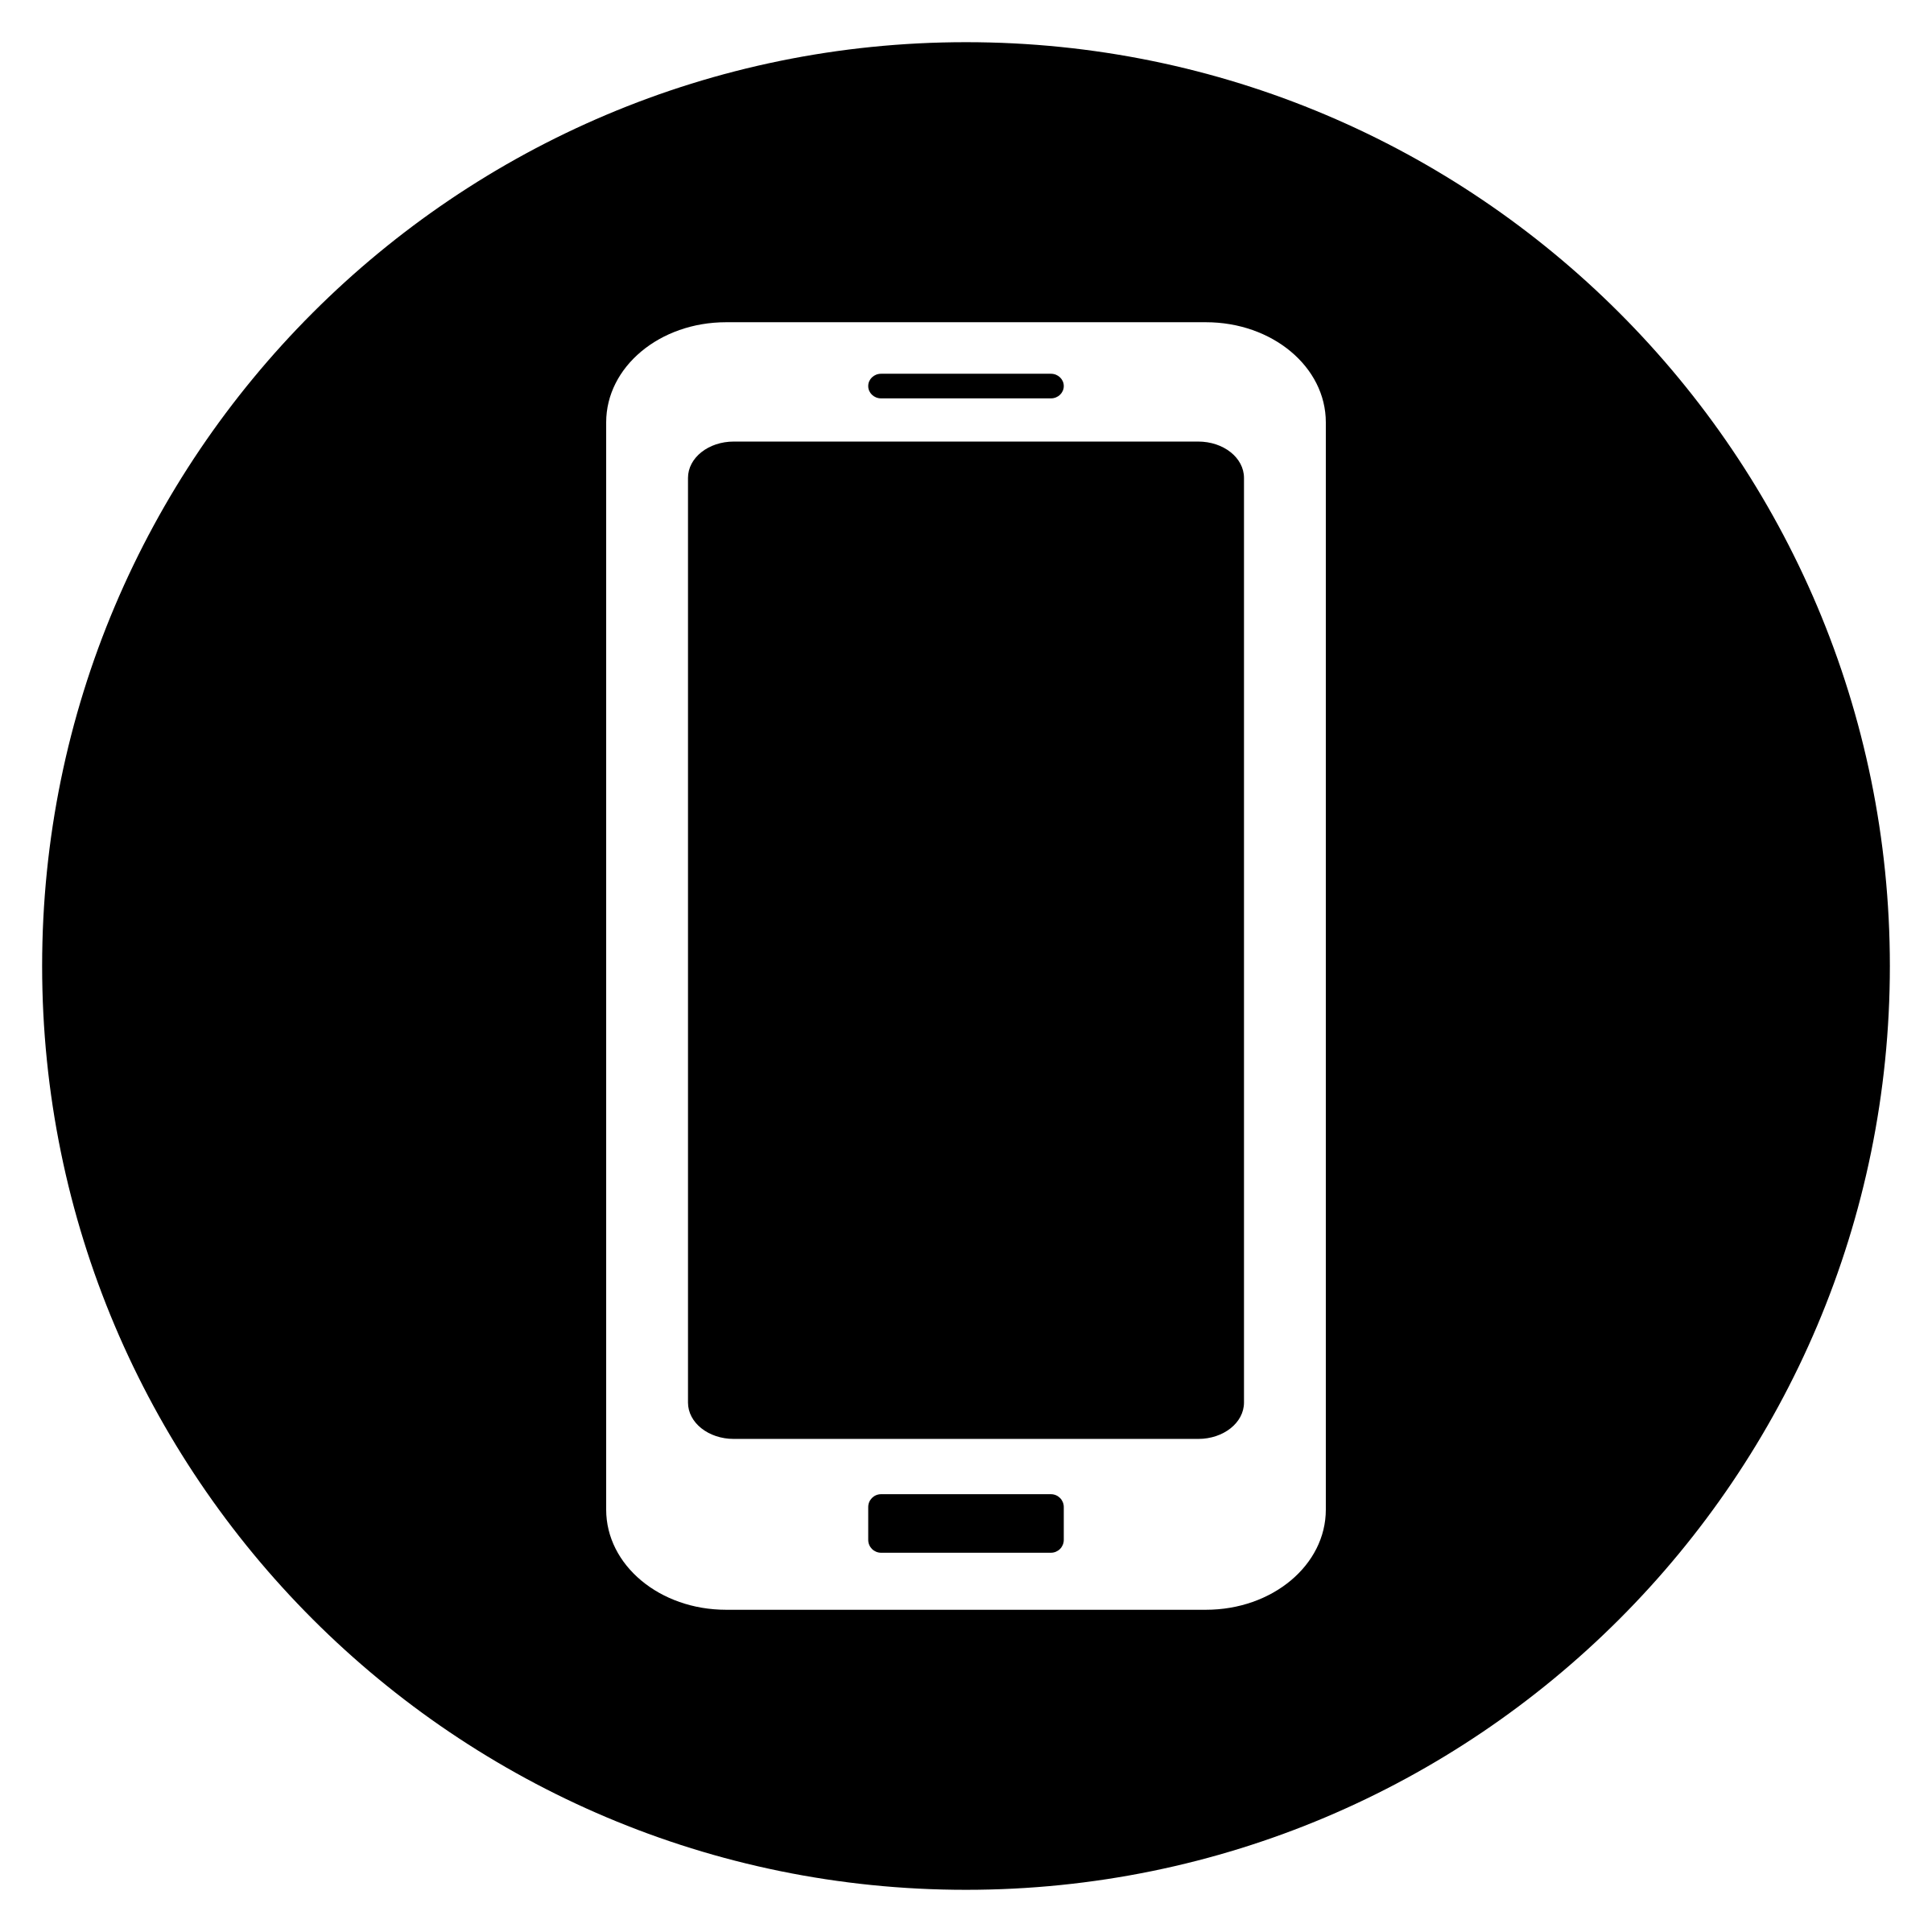 Iphone white icon buttons png. Clipart mobile on black